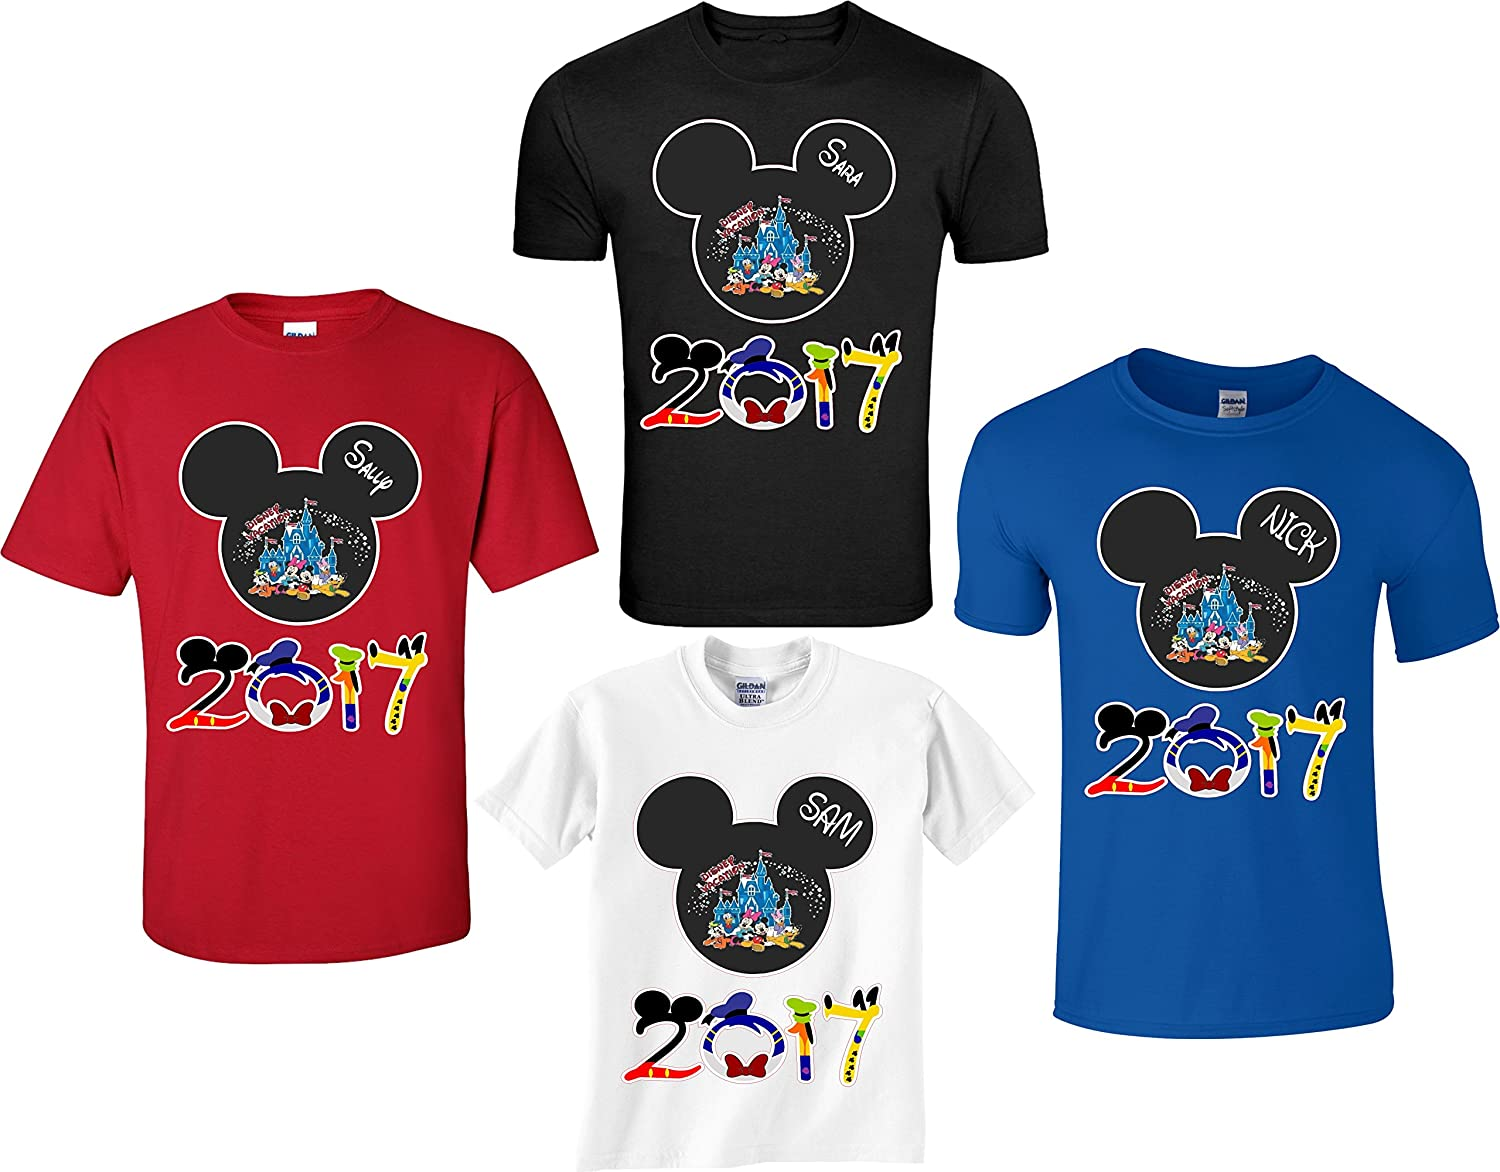 Disney t shirts south park t shirts for Amazon custom t shirts